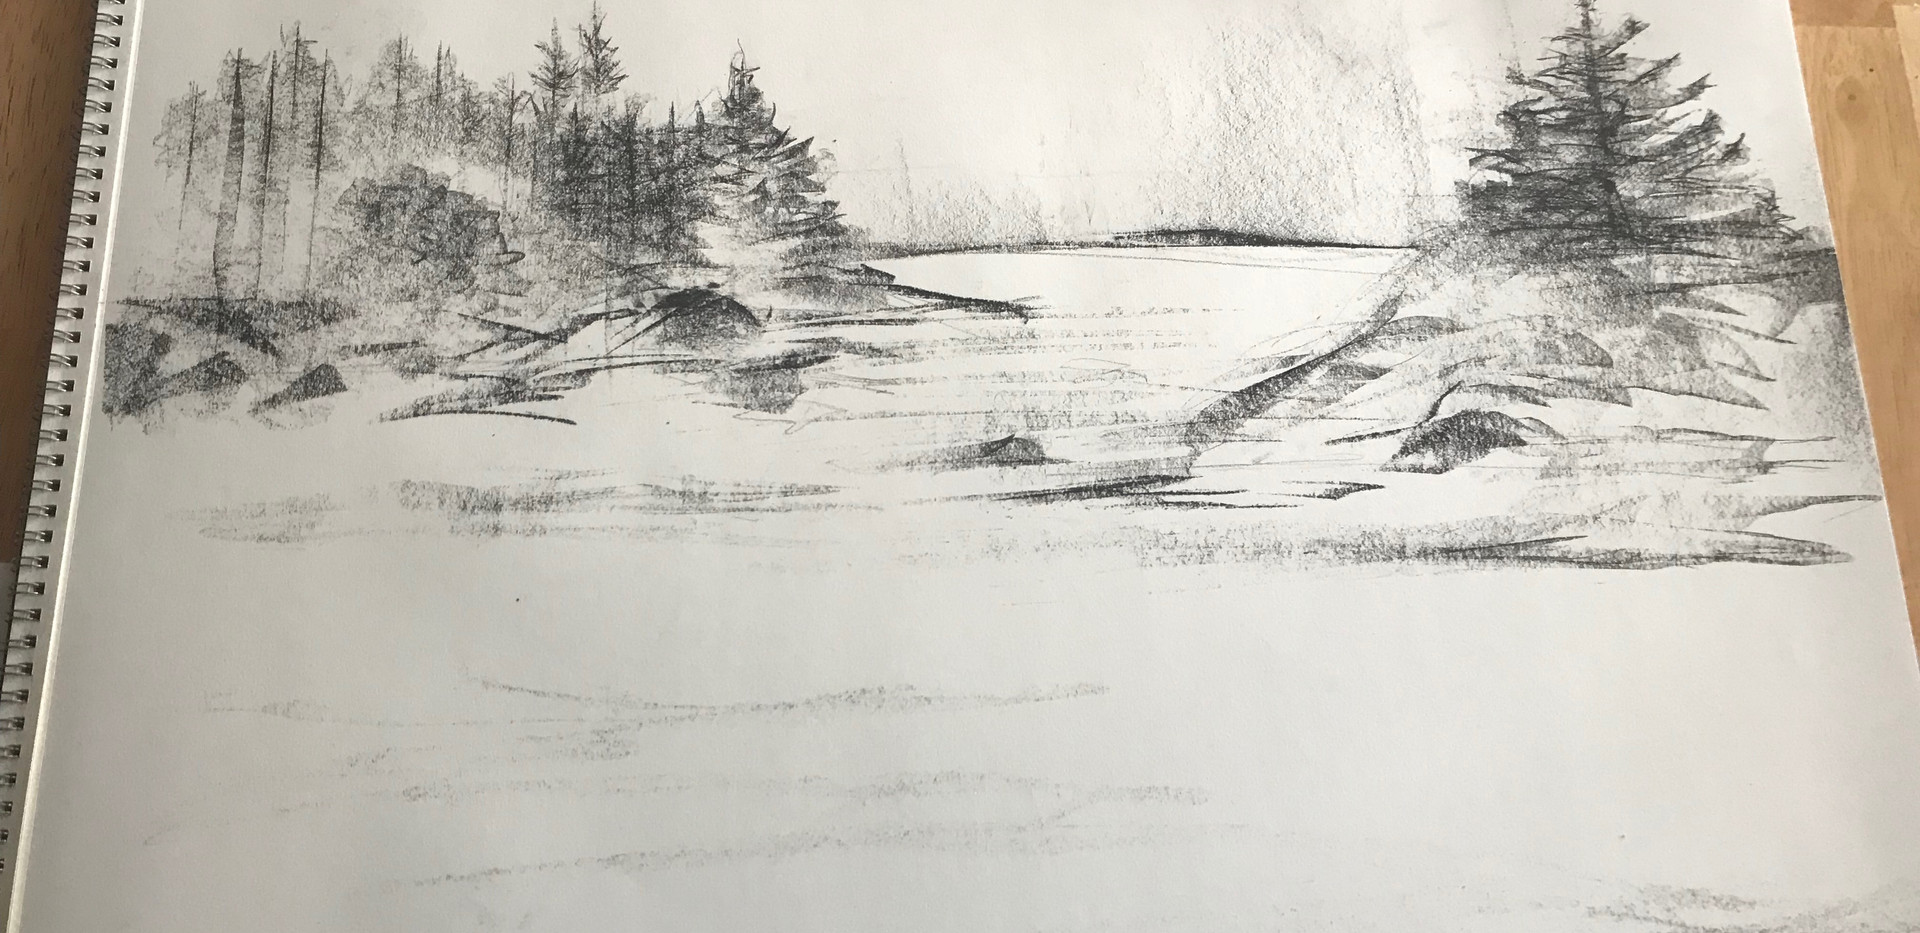 A Lobster Mans View, sketch 3